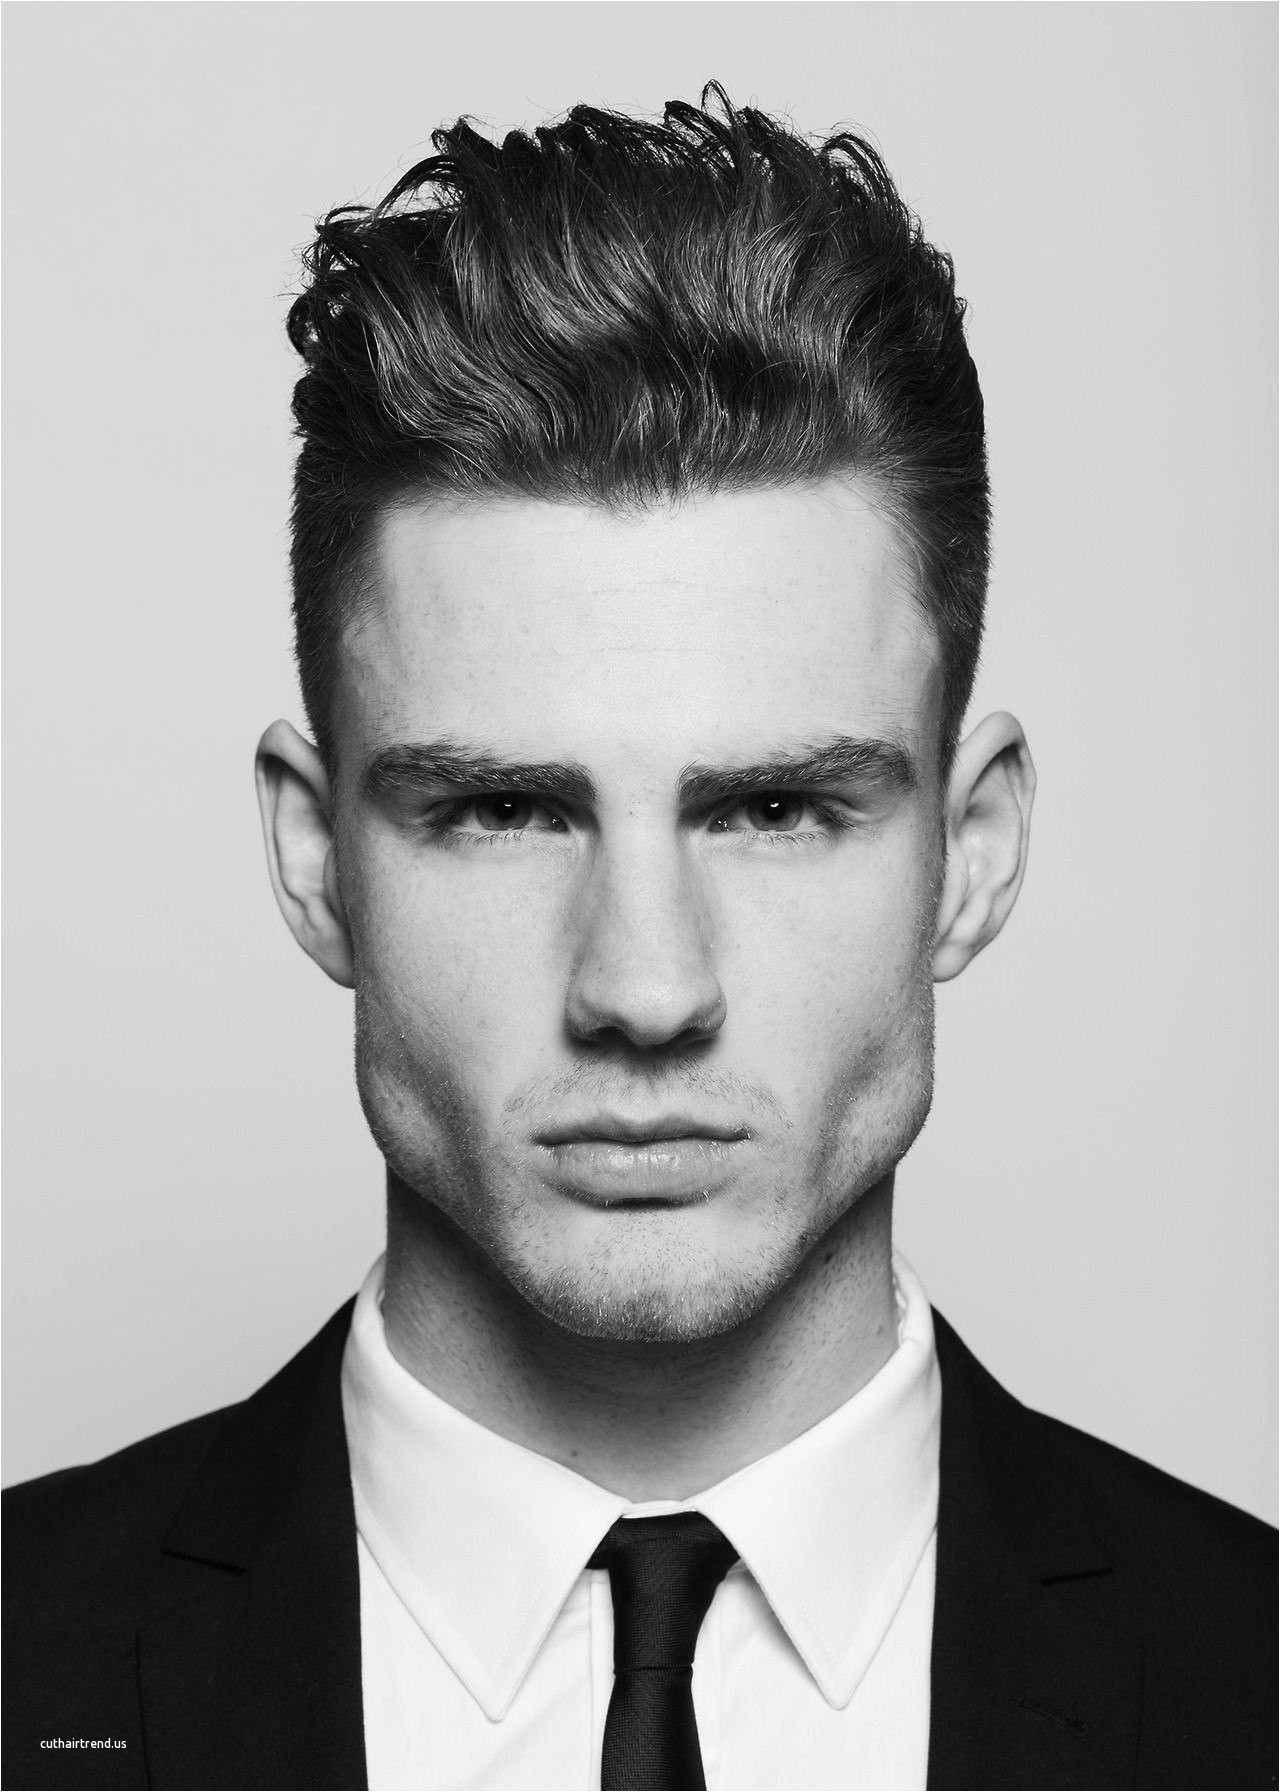 Mens Hair Styles Lovely 1920 Girl Hairstyles New 1920s Hairstyles Luxury Male Hair Styles